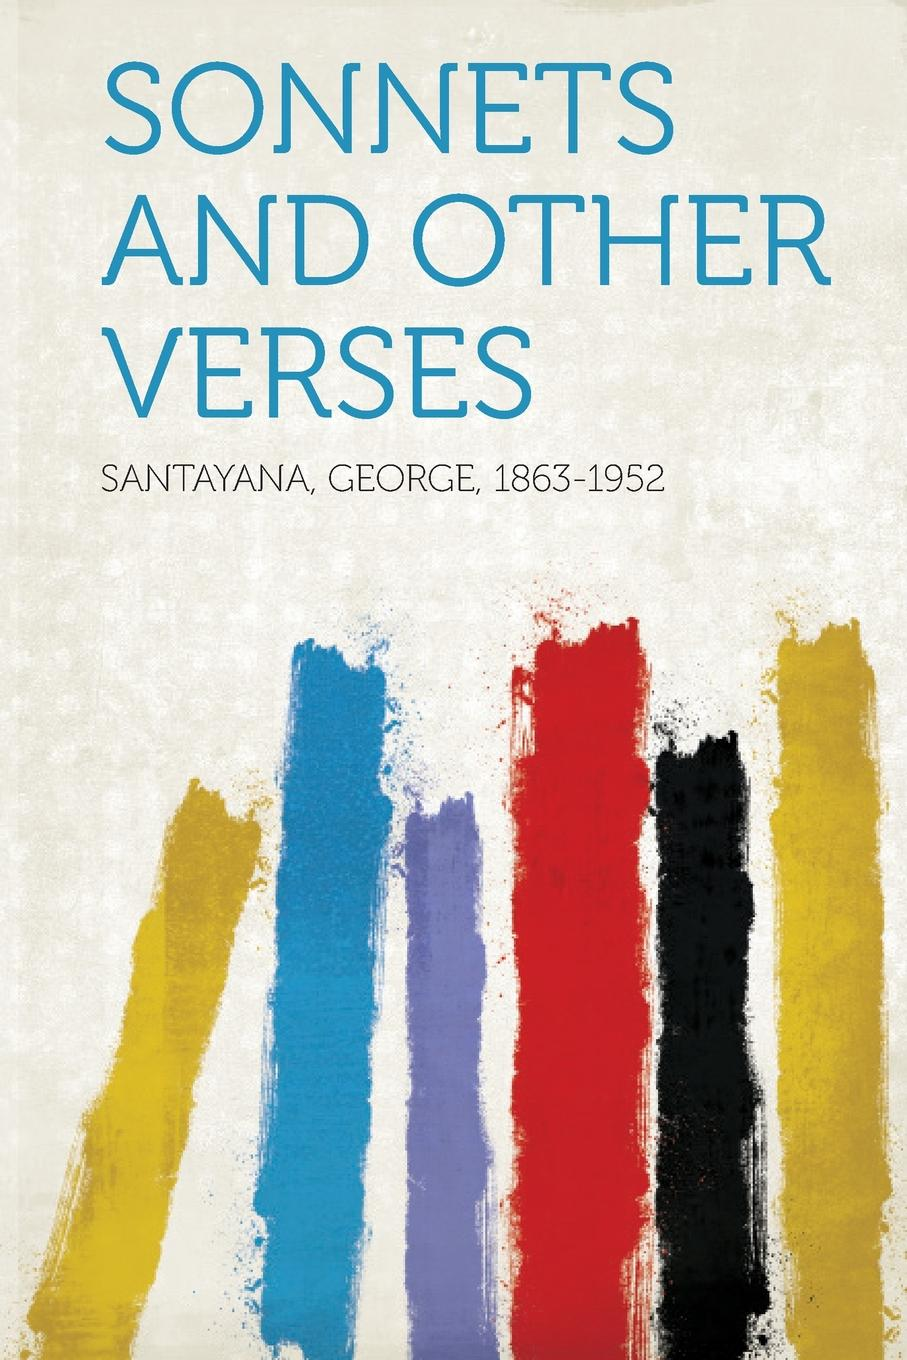 George Santayana Sonnets and Other Verses